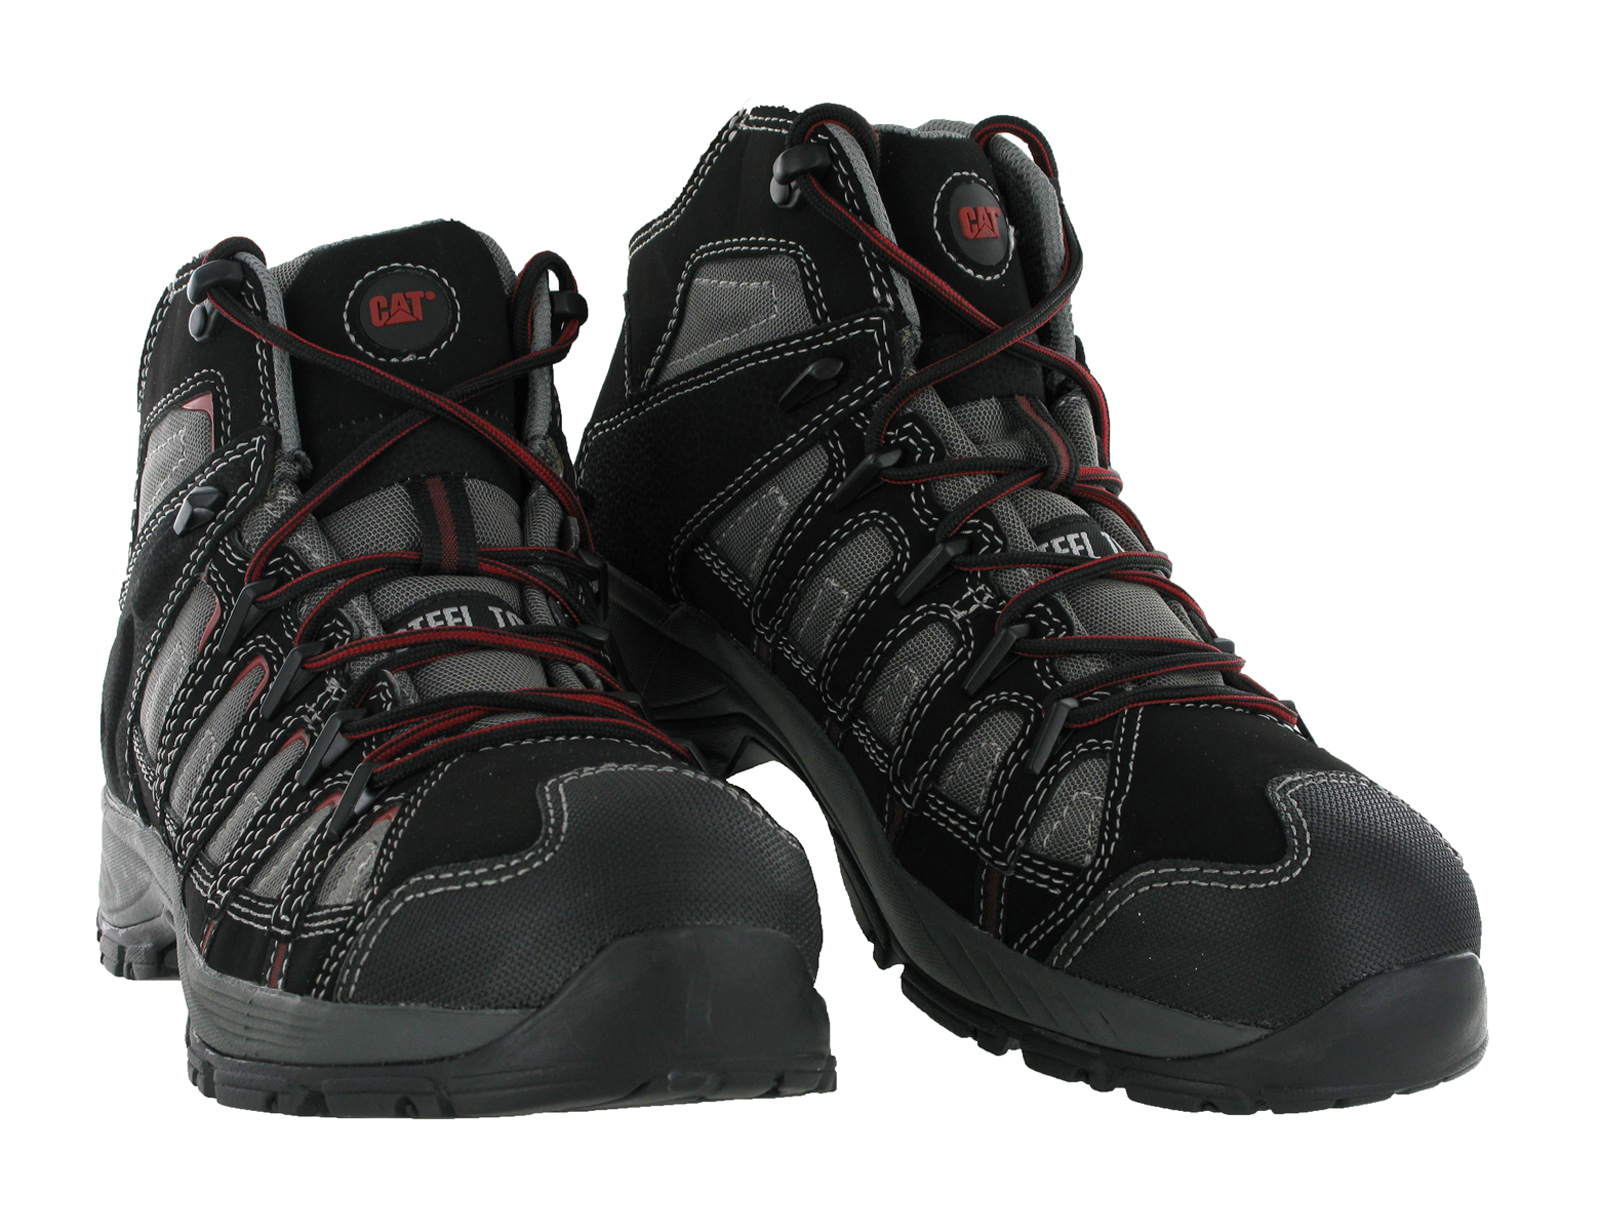 CAT Caterpillar Dashboard Steel Toe Cap Safety Work Mens Ankle Boots Size 6-12 | EBay